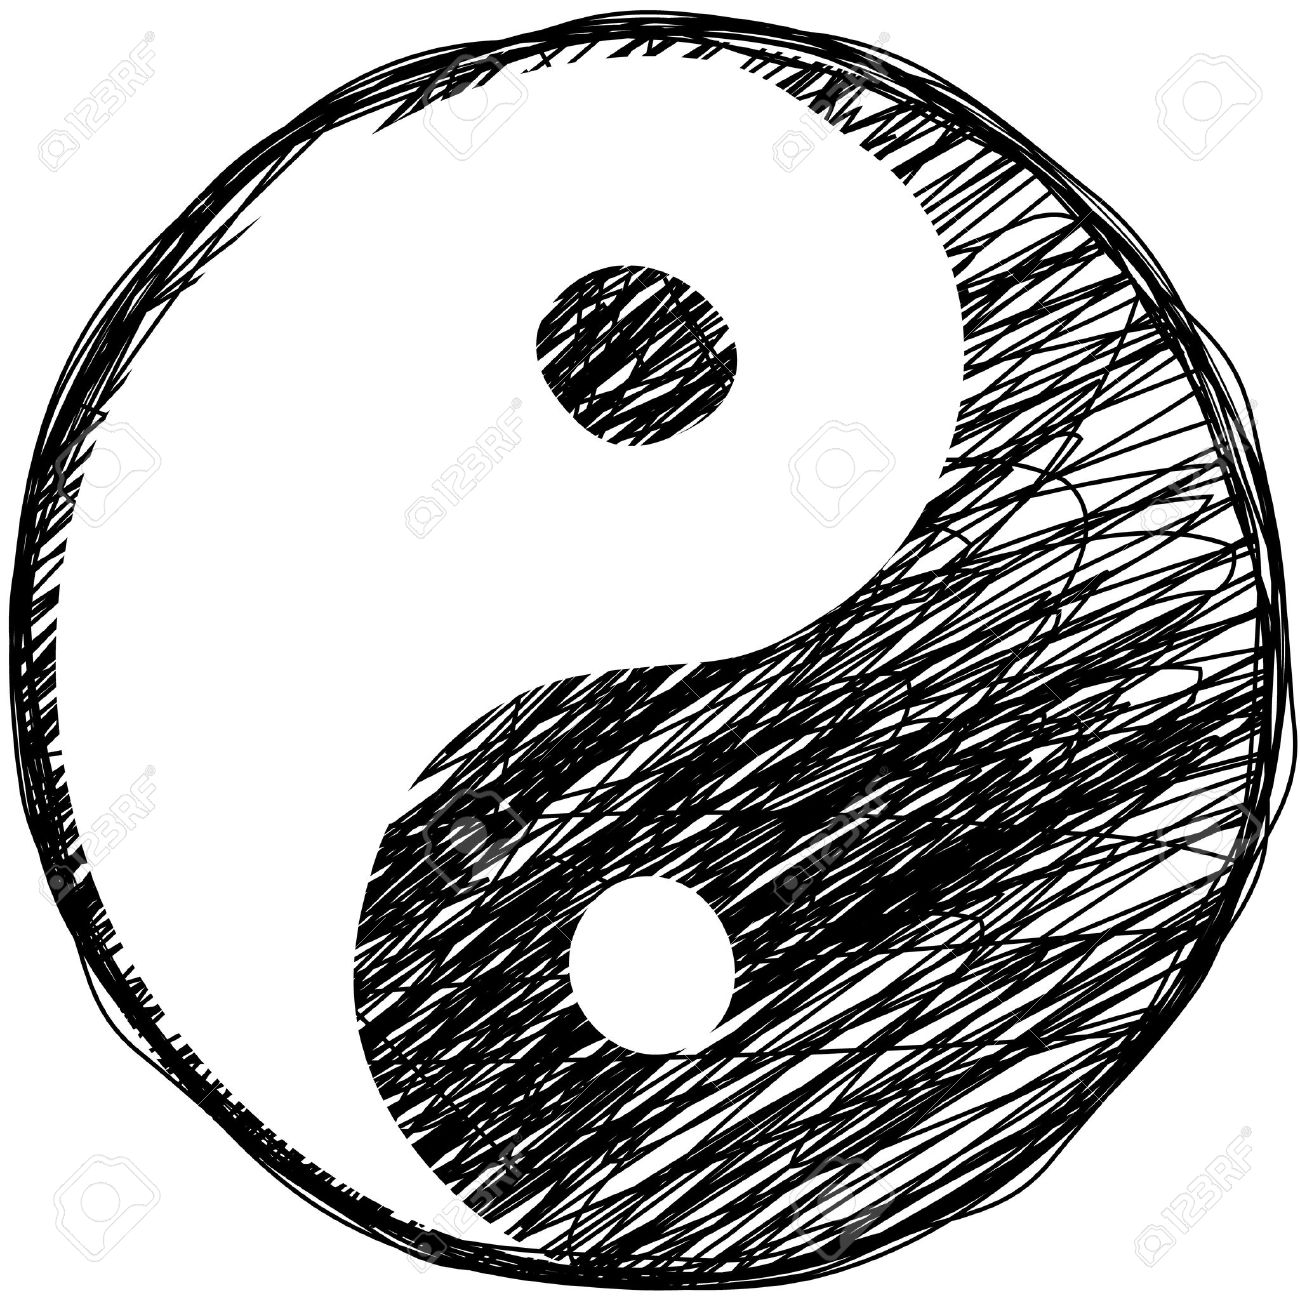 Pictures of ying yang symbol free download best pictures of ying 1300x1300 drawn symbol yin yang biocorpaavc